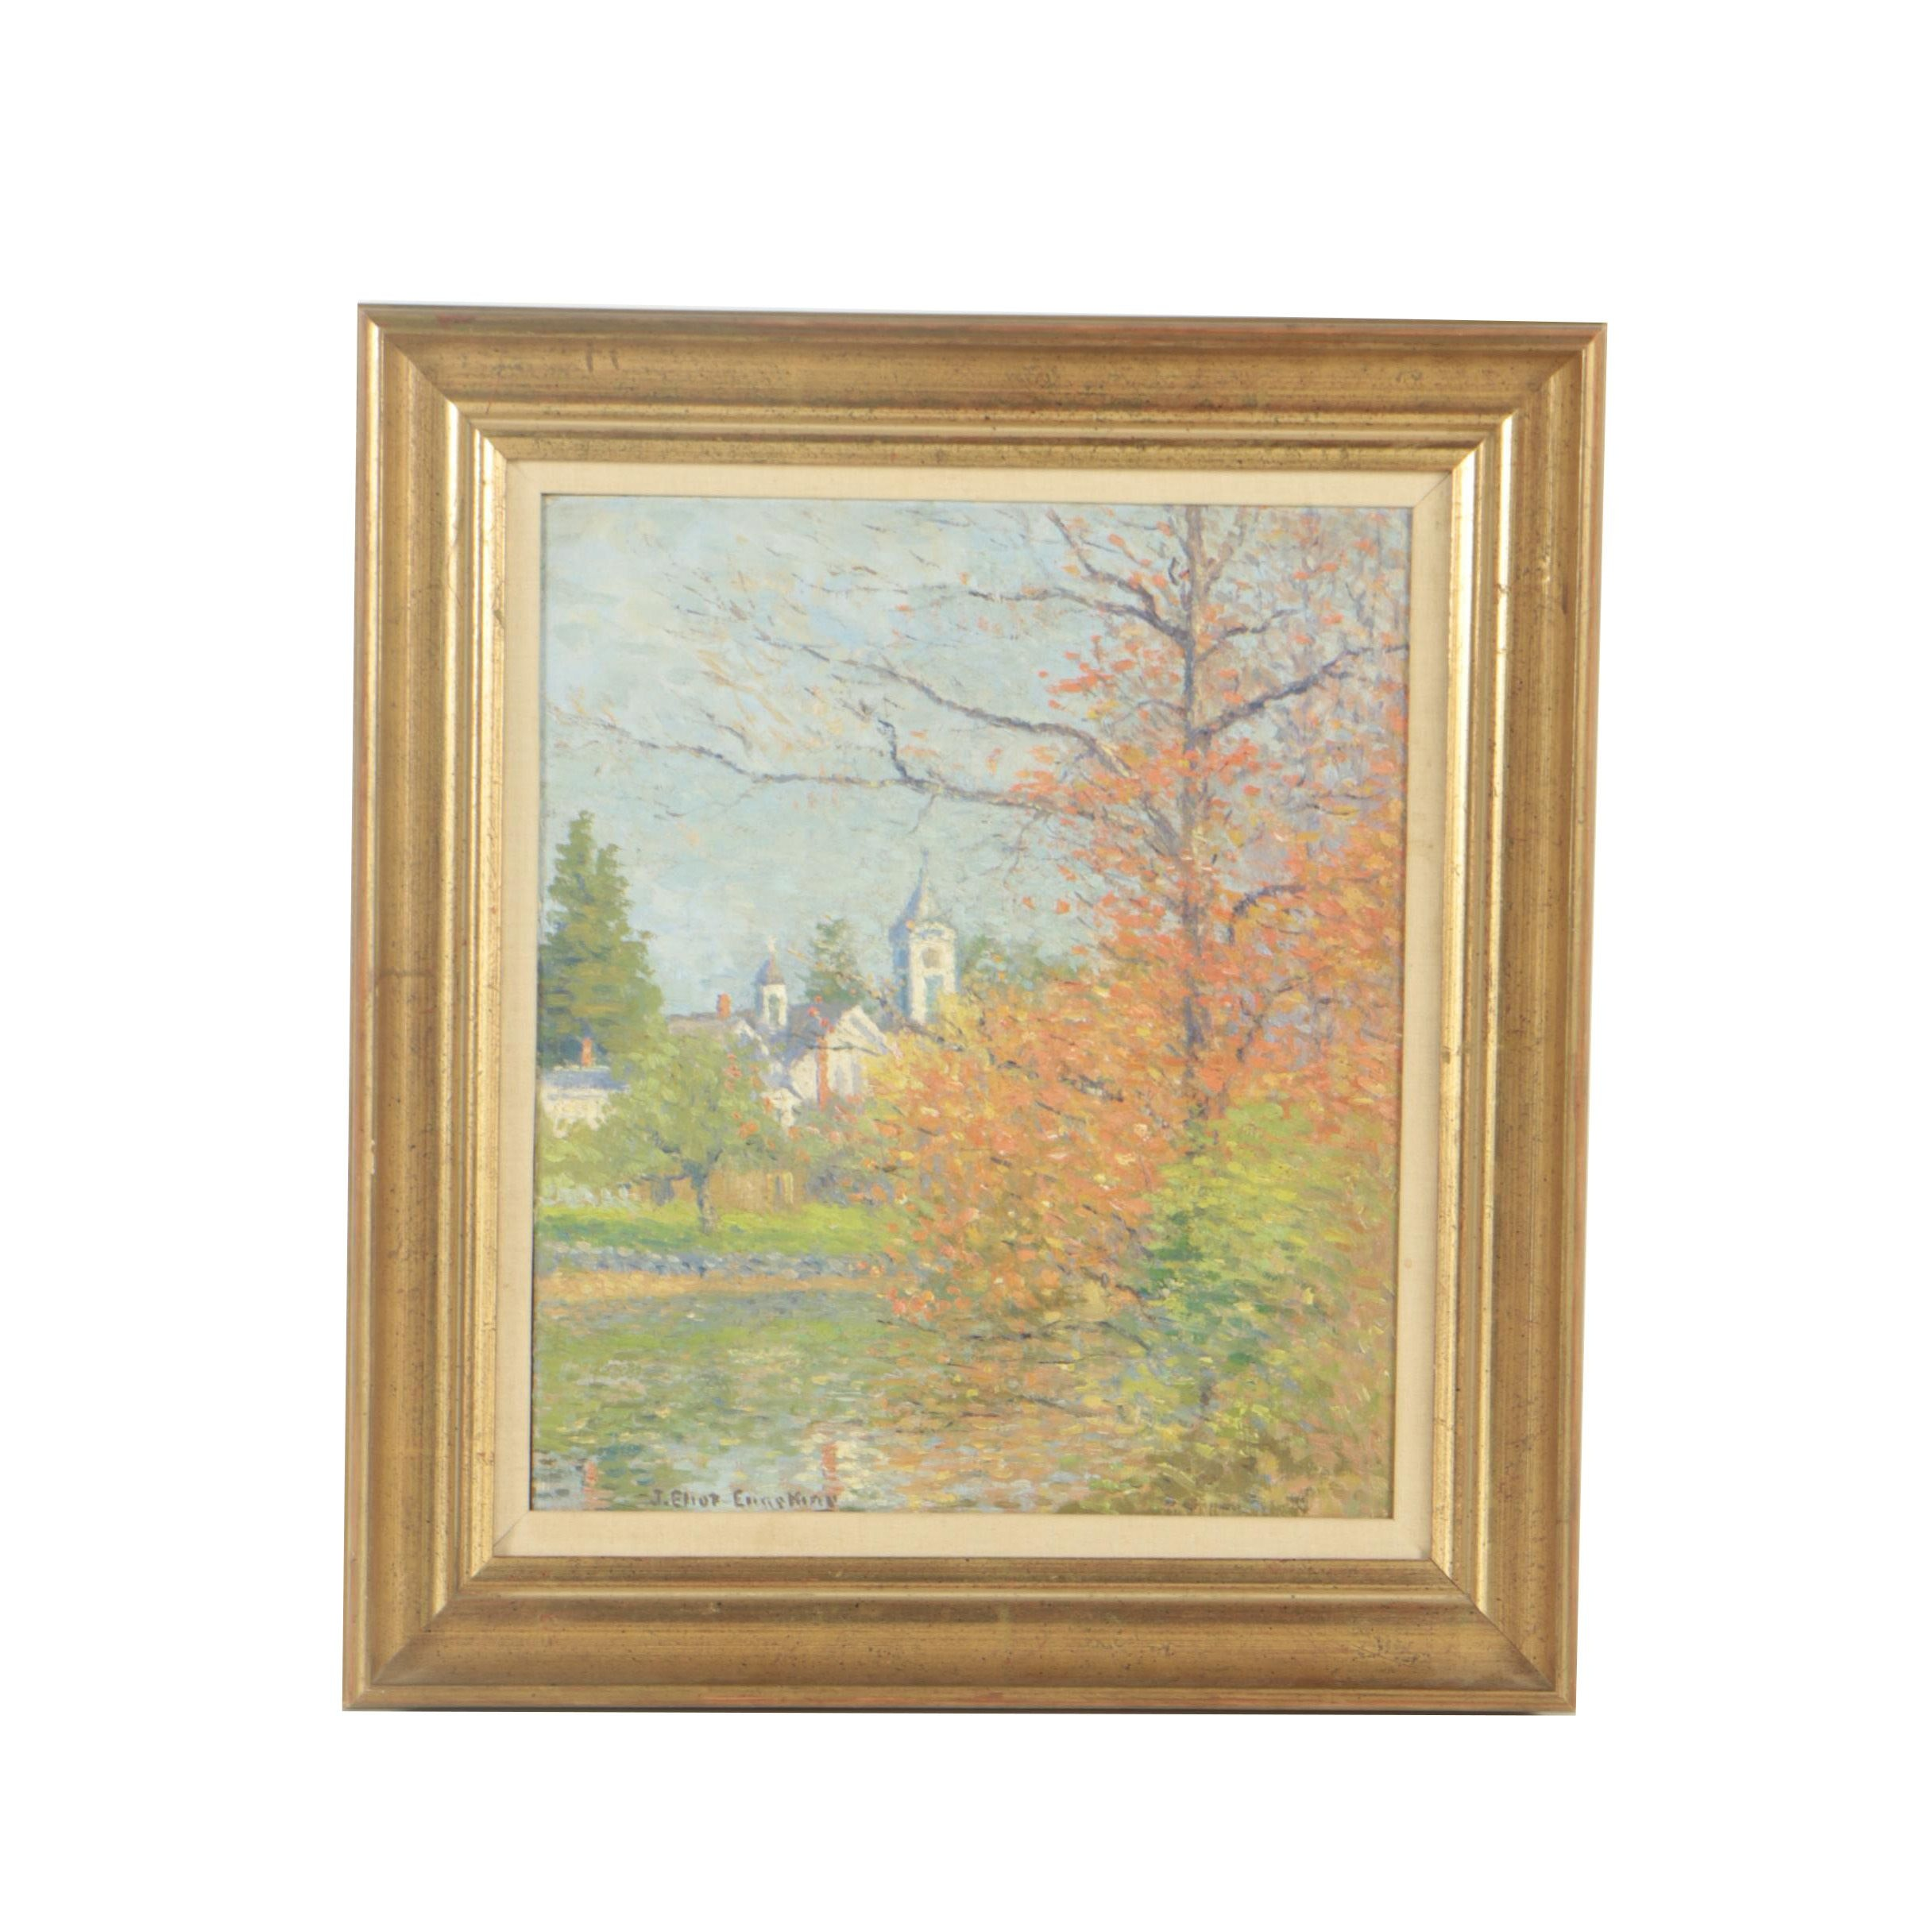 Joseph Eliot Enneking Oil Painting